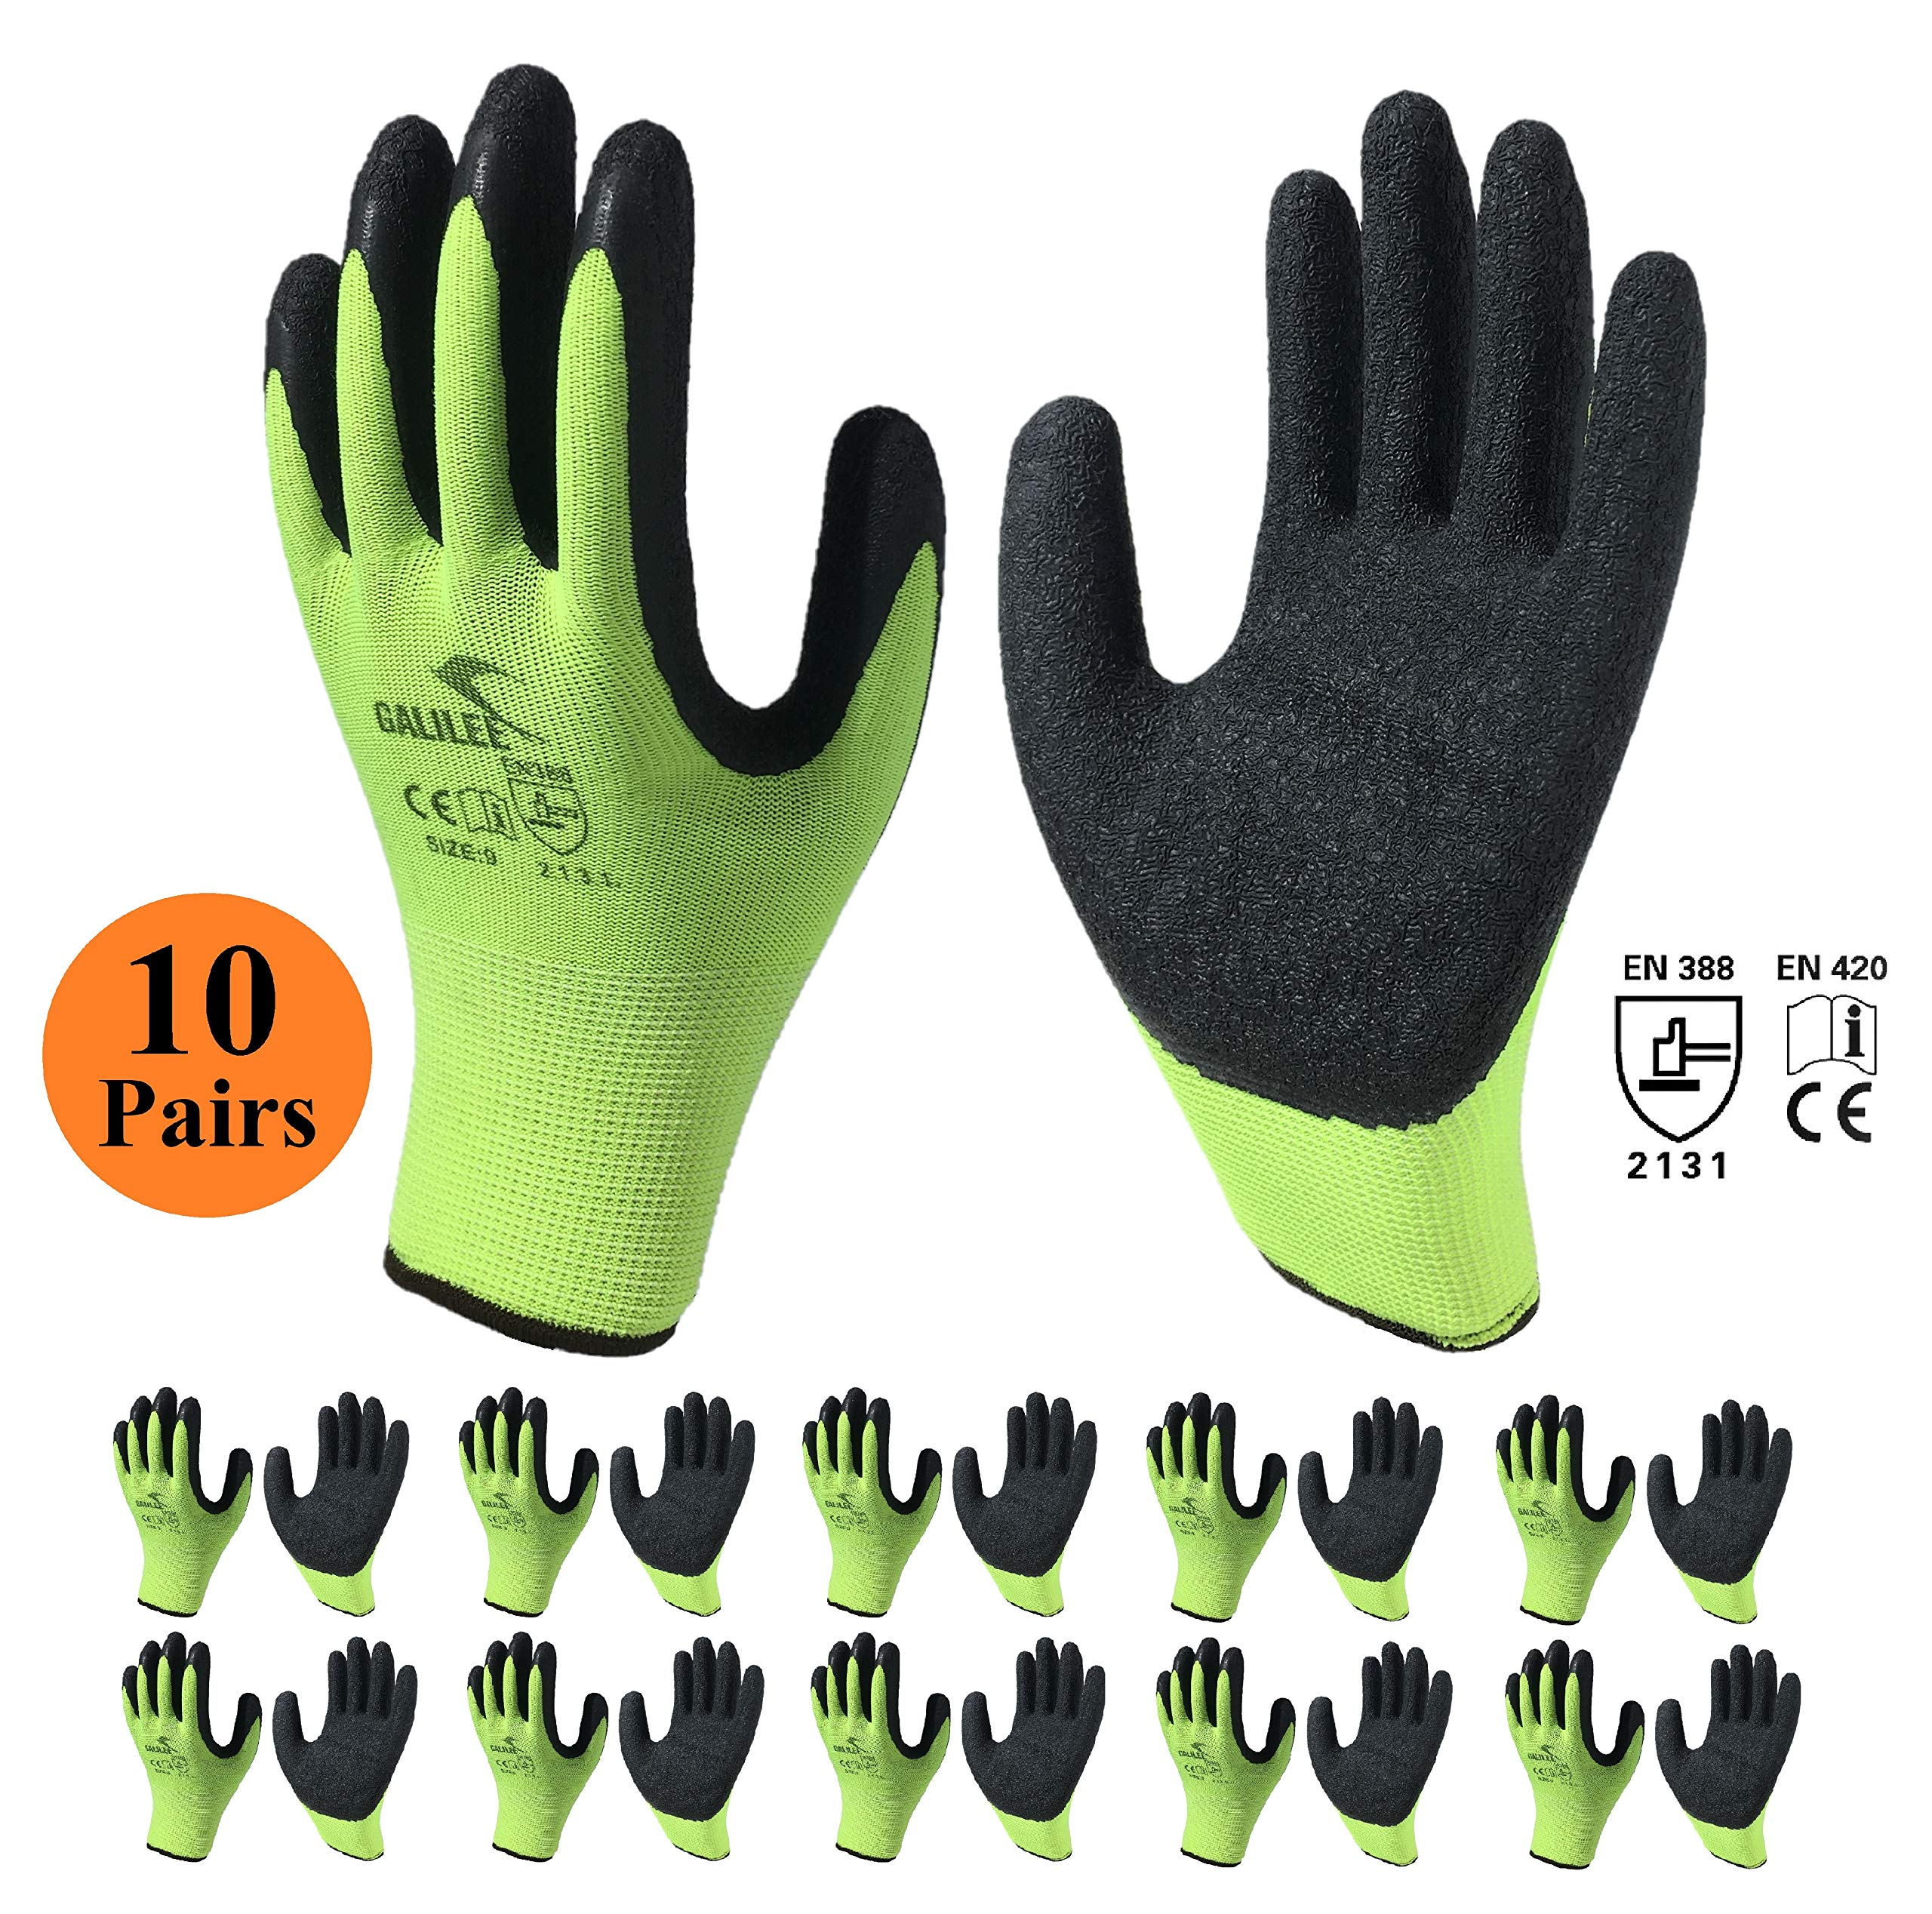 Work Safety Gloves, 10-Pair Pack, Gardening Gloves Rugged with Firm Grip Latex Rubber Coating for Men and Women… 1